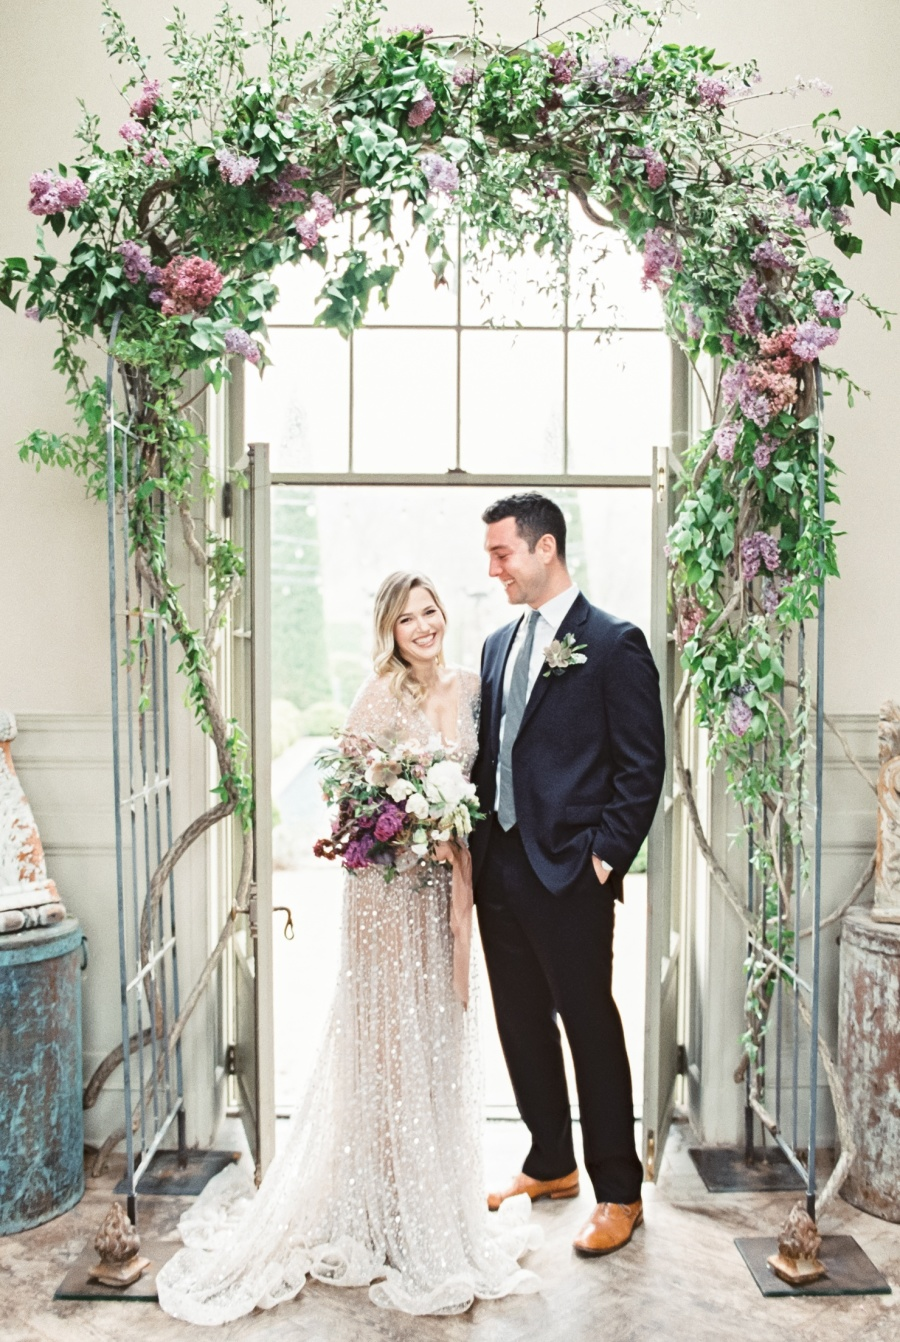 The ceremony arch was made over the doors, it was composed of greenery and lilac and purple flowers